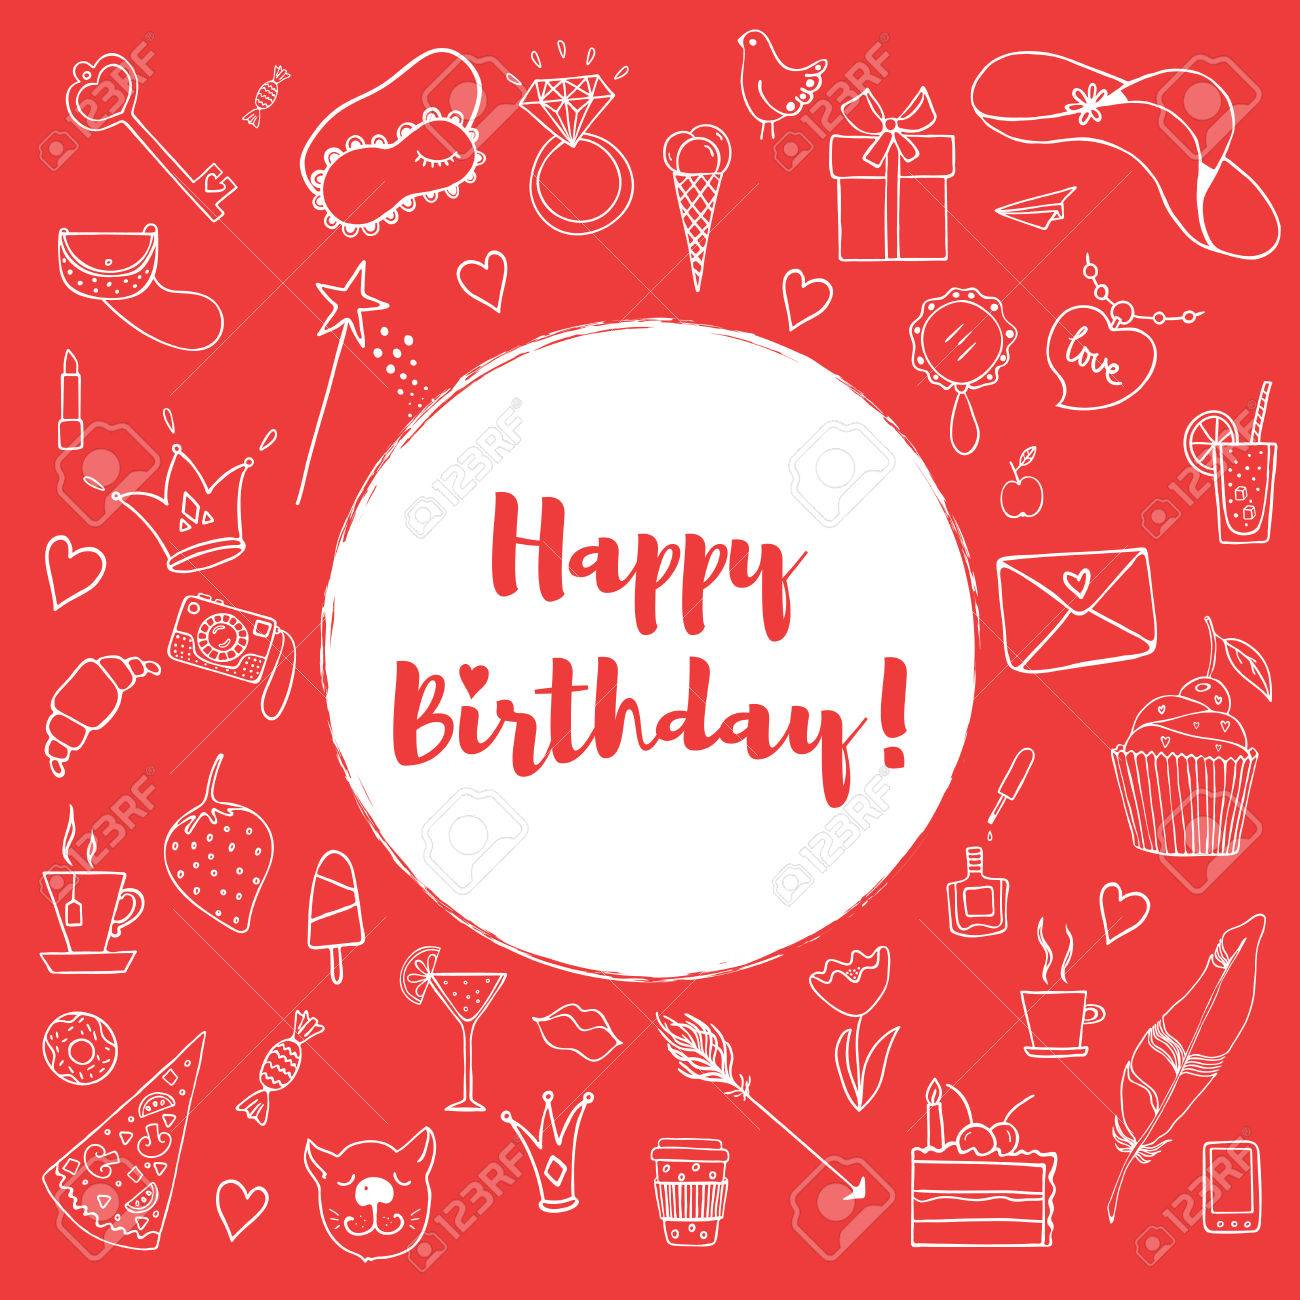 Doc500500 Happy Birthday Cards Templates Cartoon style Happy – Happy Birthday Card Template Free Download